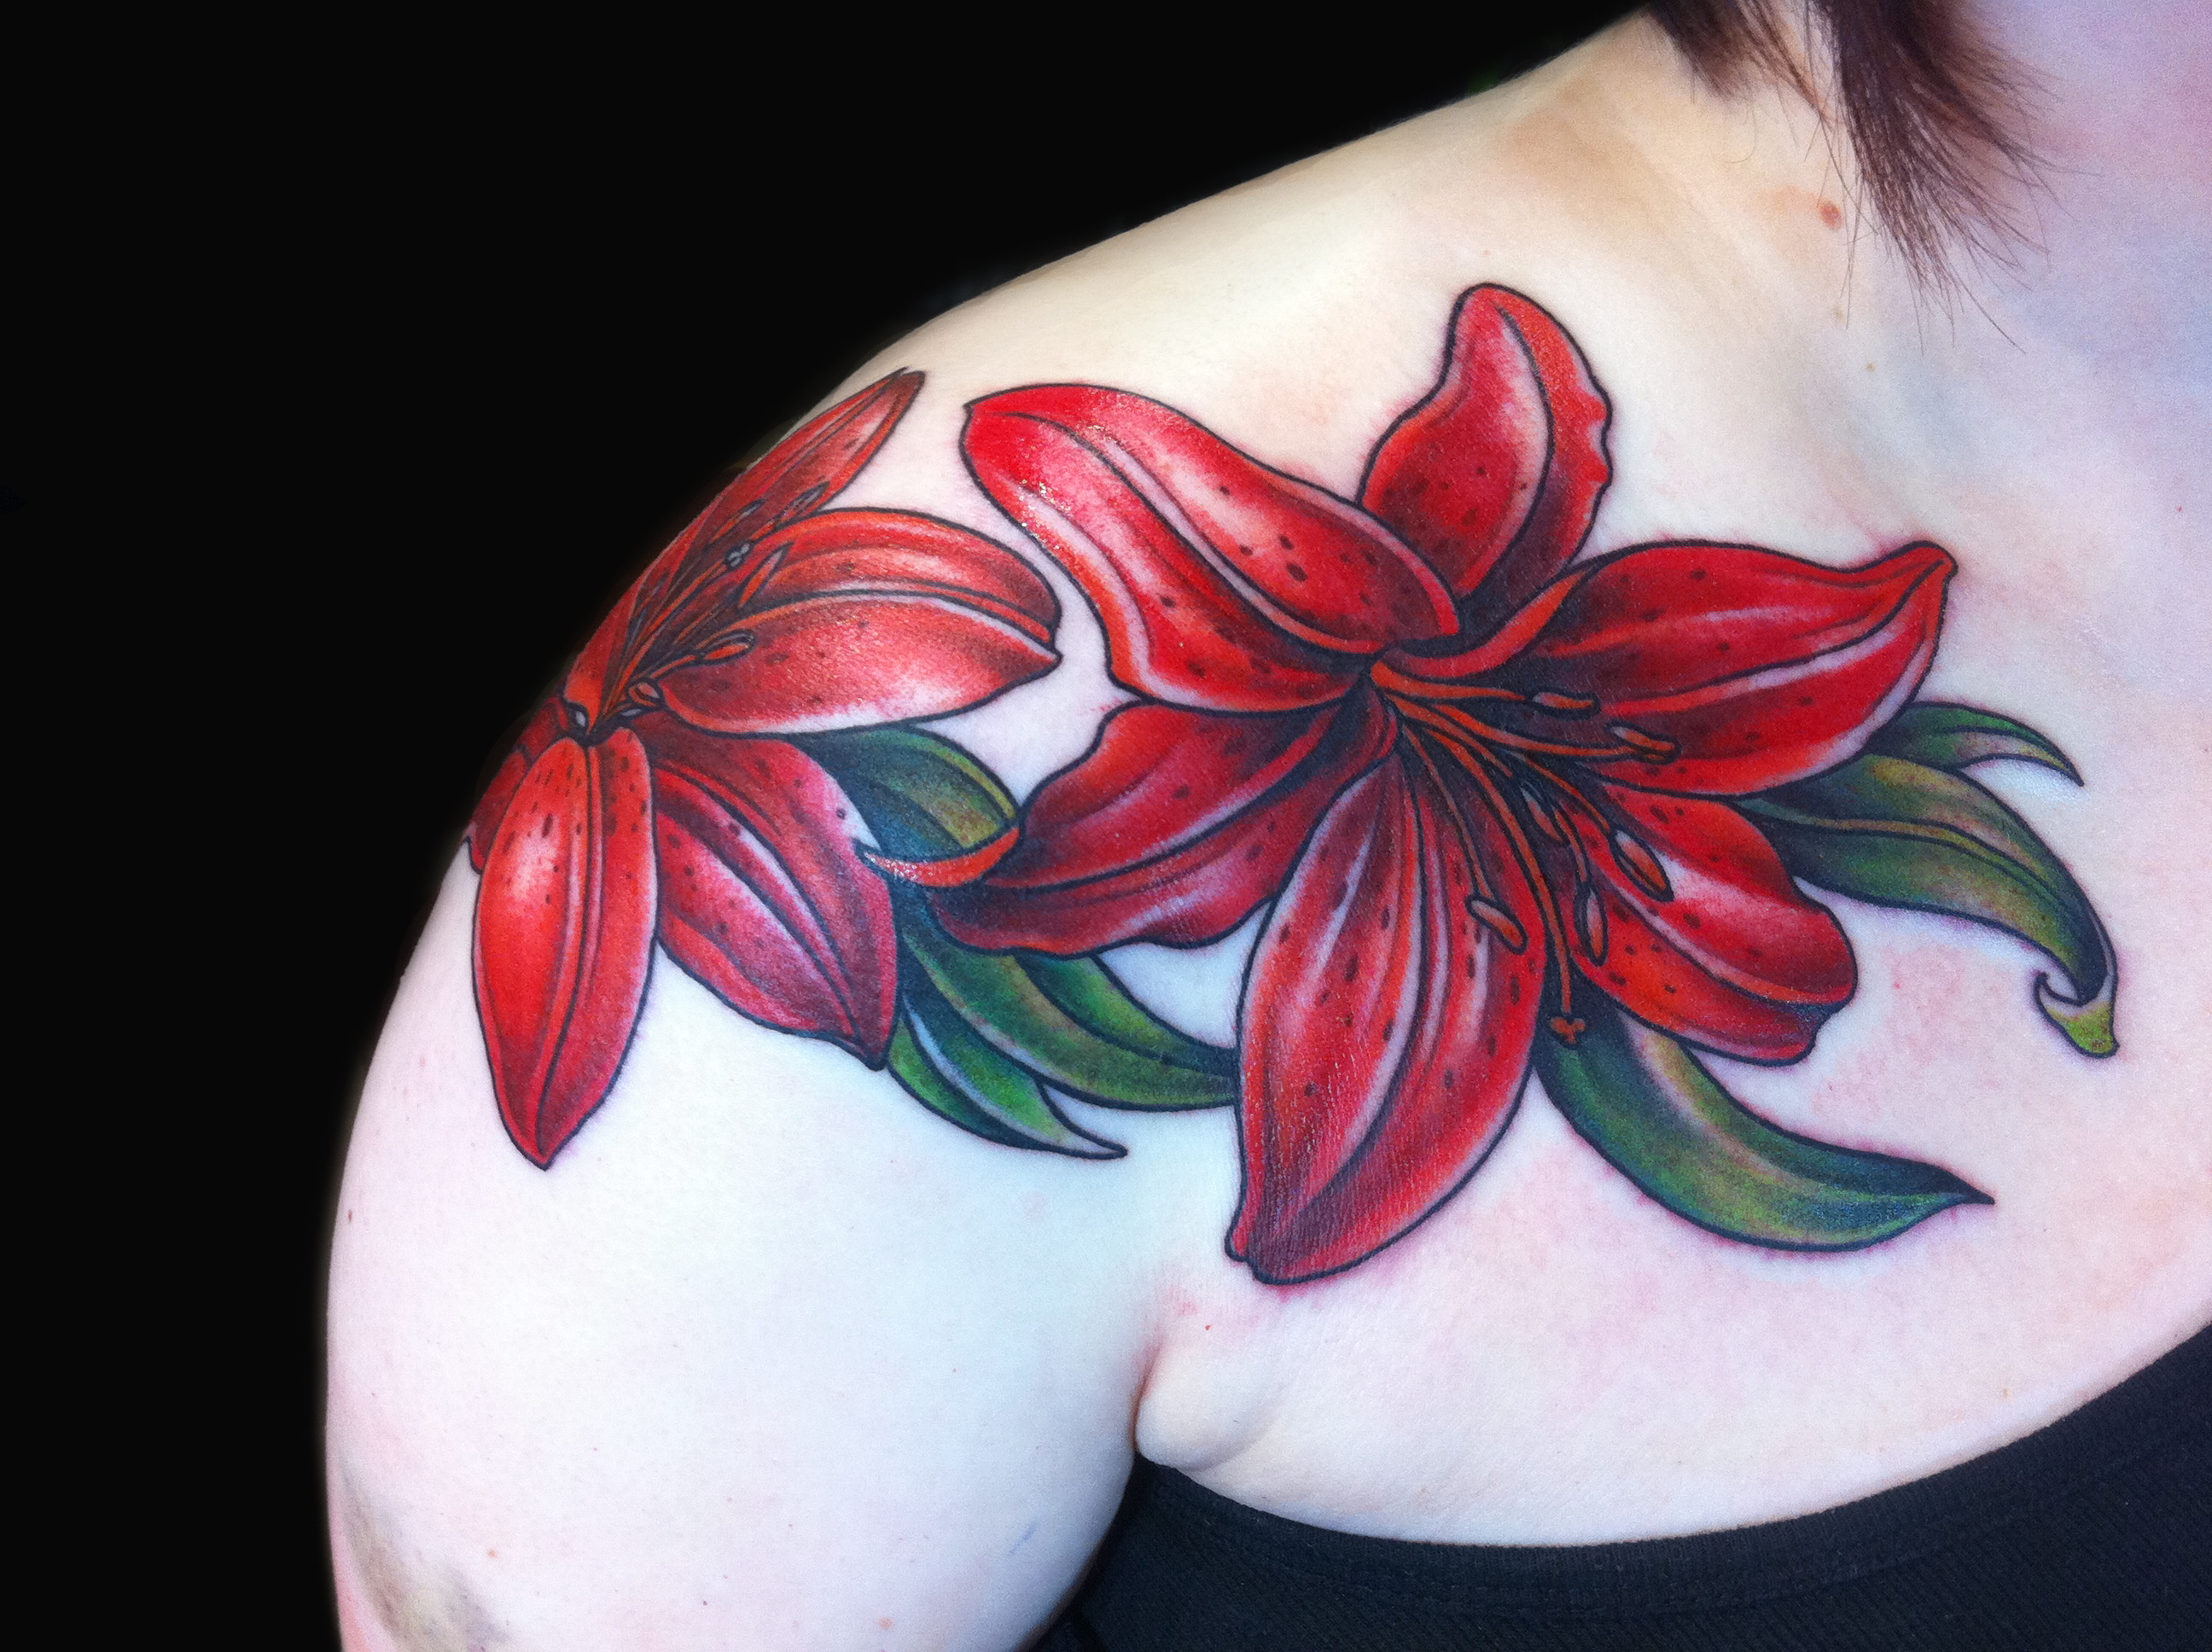 Tattoos jessi lawson artist red lily tattoo floral chest piece done by female tattoo artist jessi lawson izmirmasajfo